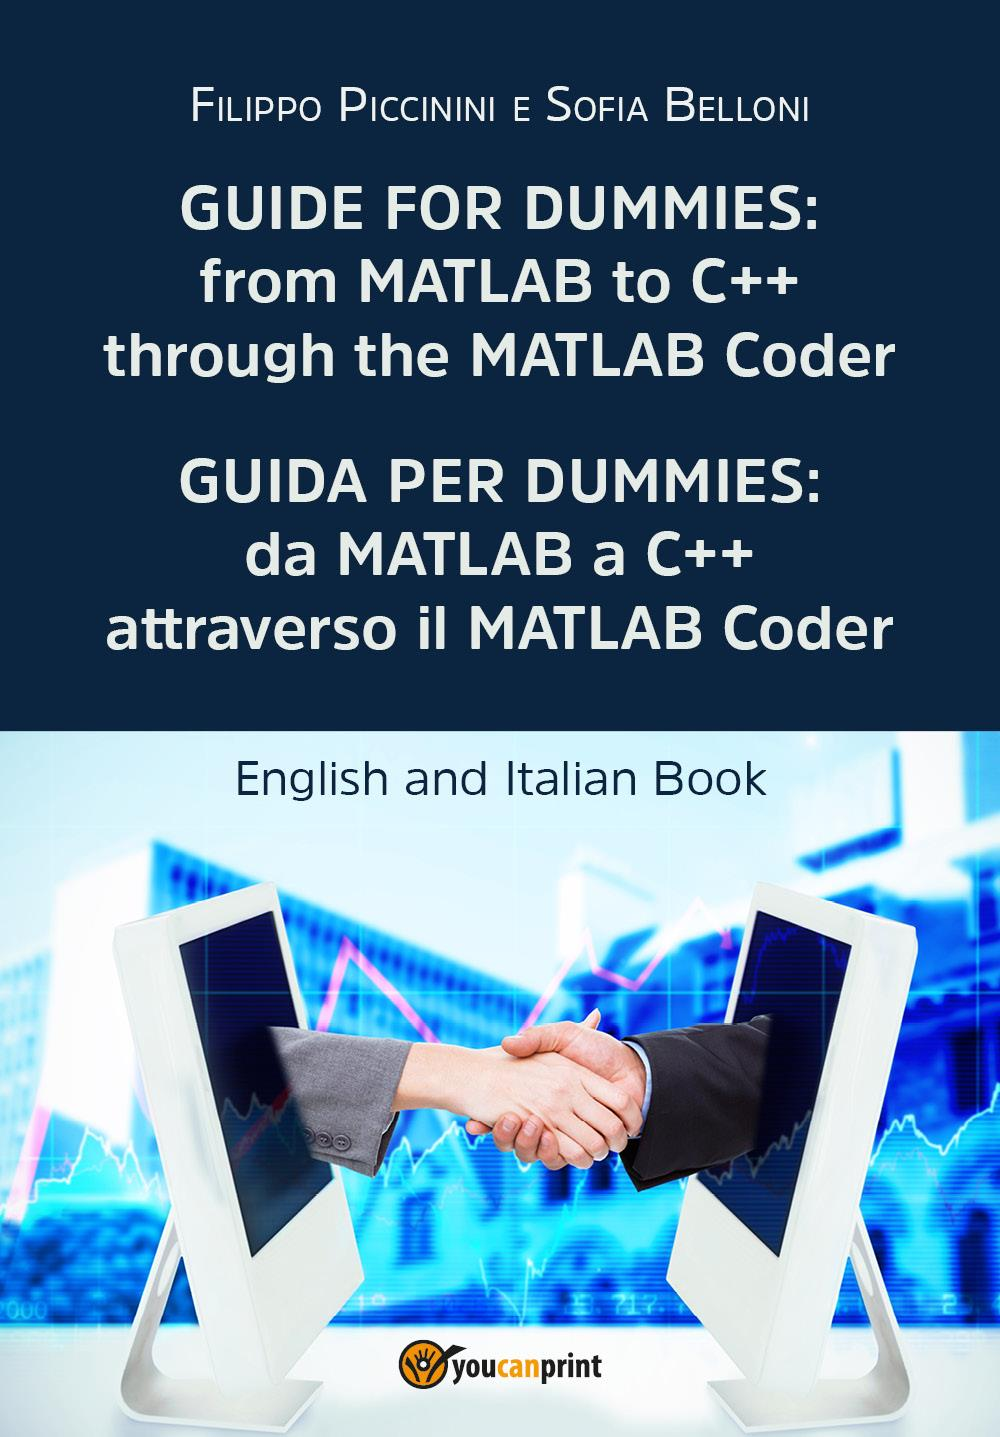 Guide for Dummies:  from MATLAB to C++  through the MATLAB Coder - Guida per Dummies:  da MATLAB a C++  attraverso il MATLAB Coder